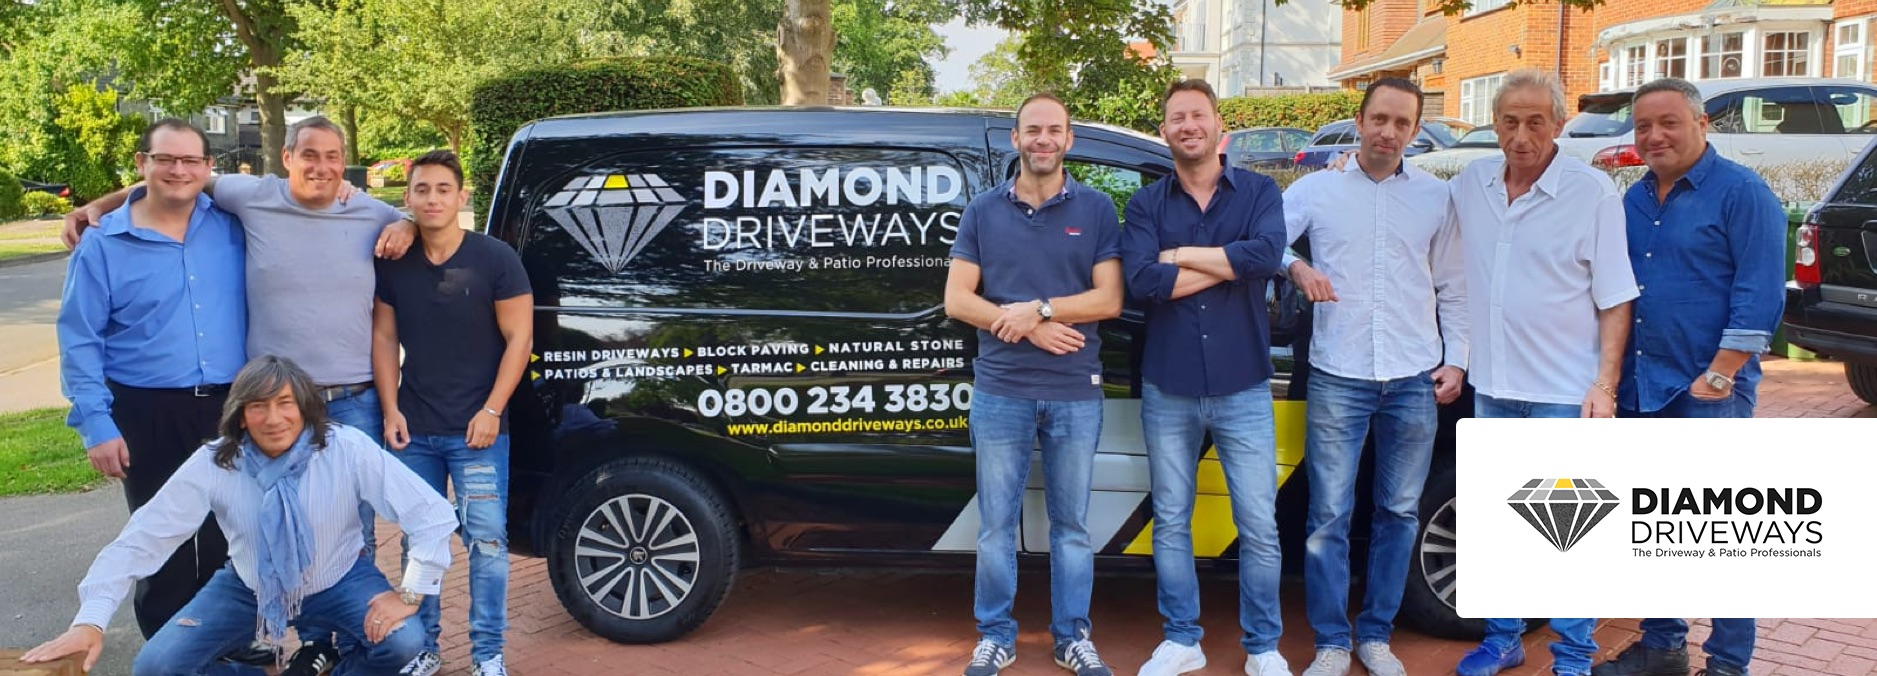 Diamond-driveways Banner